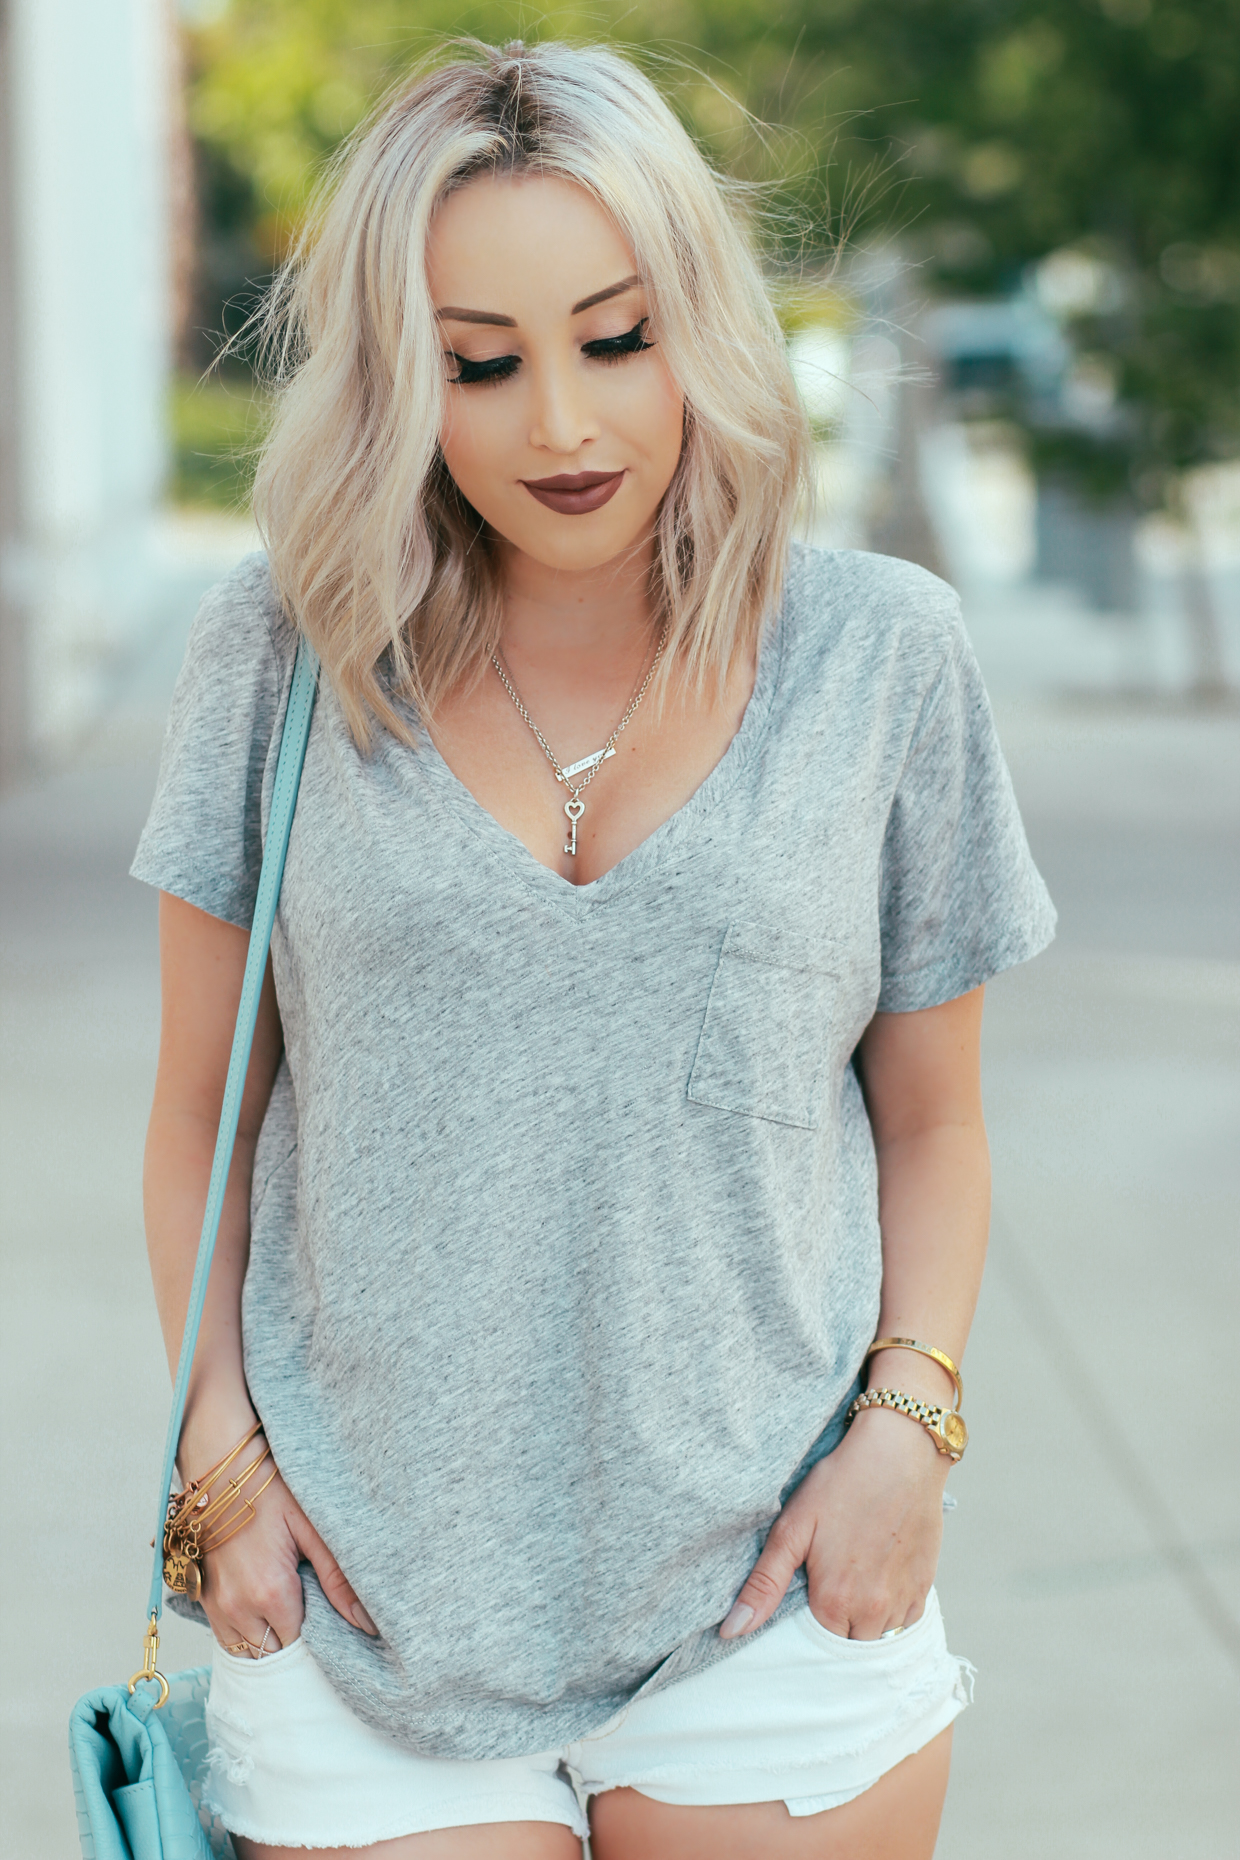 Blondie in the City   Perfect, Simple V-Neck Tee by @madewell - Crossbody Reversible Clutch by @giginewyork